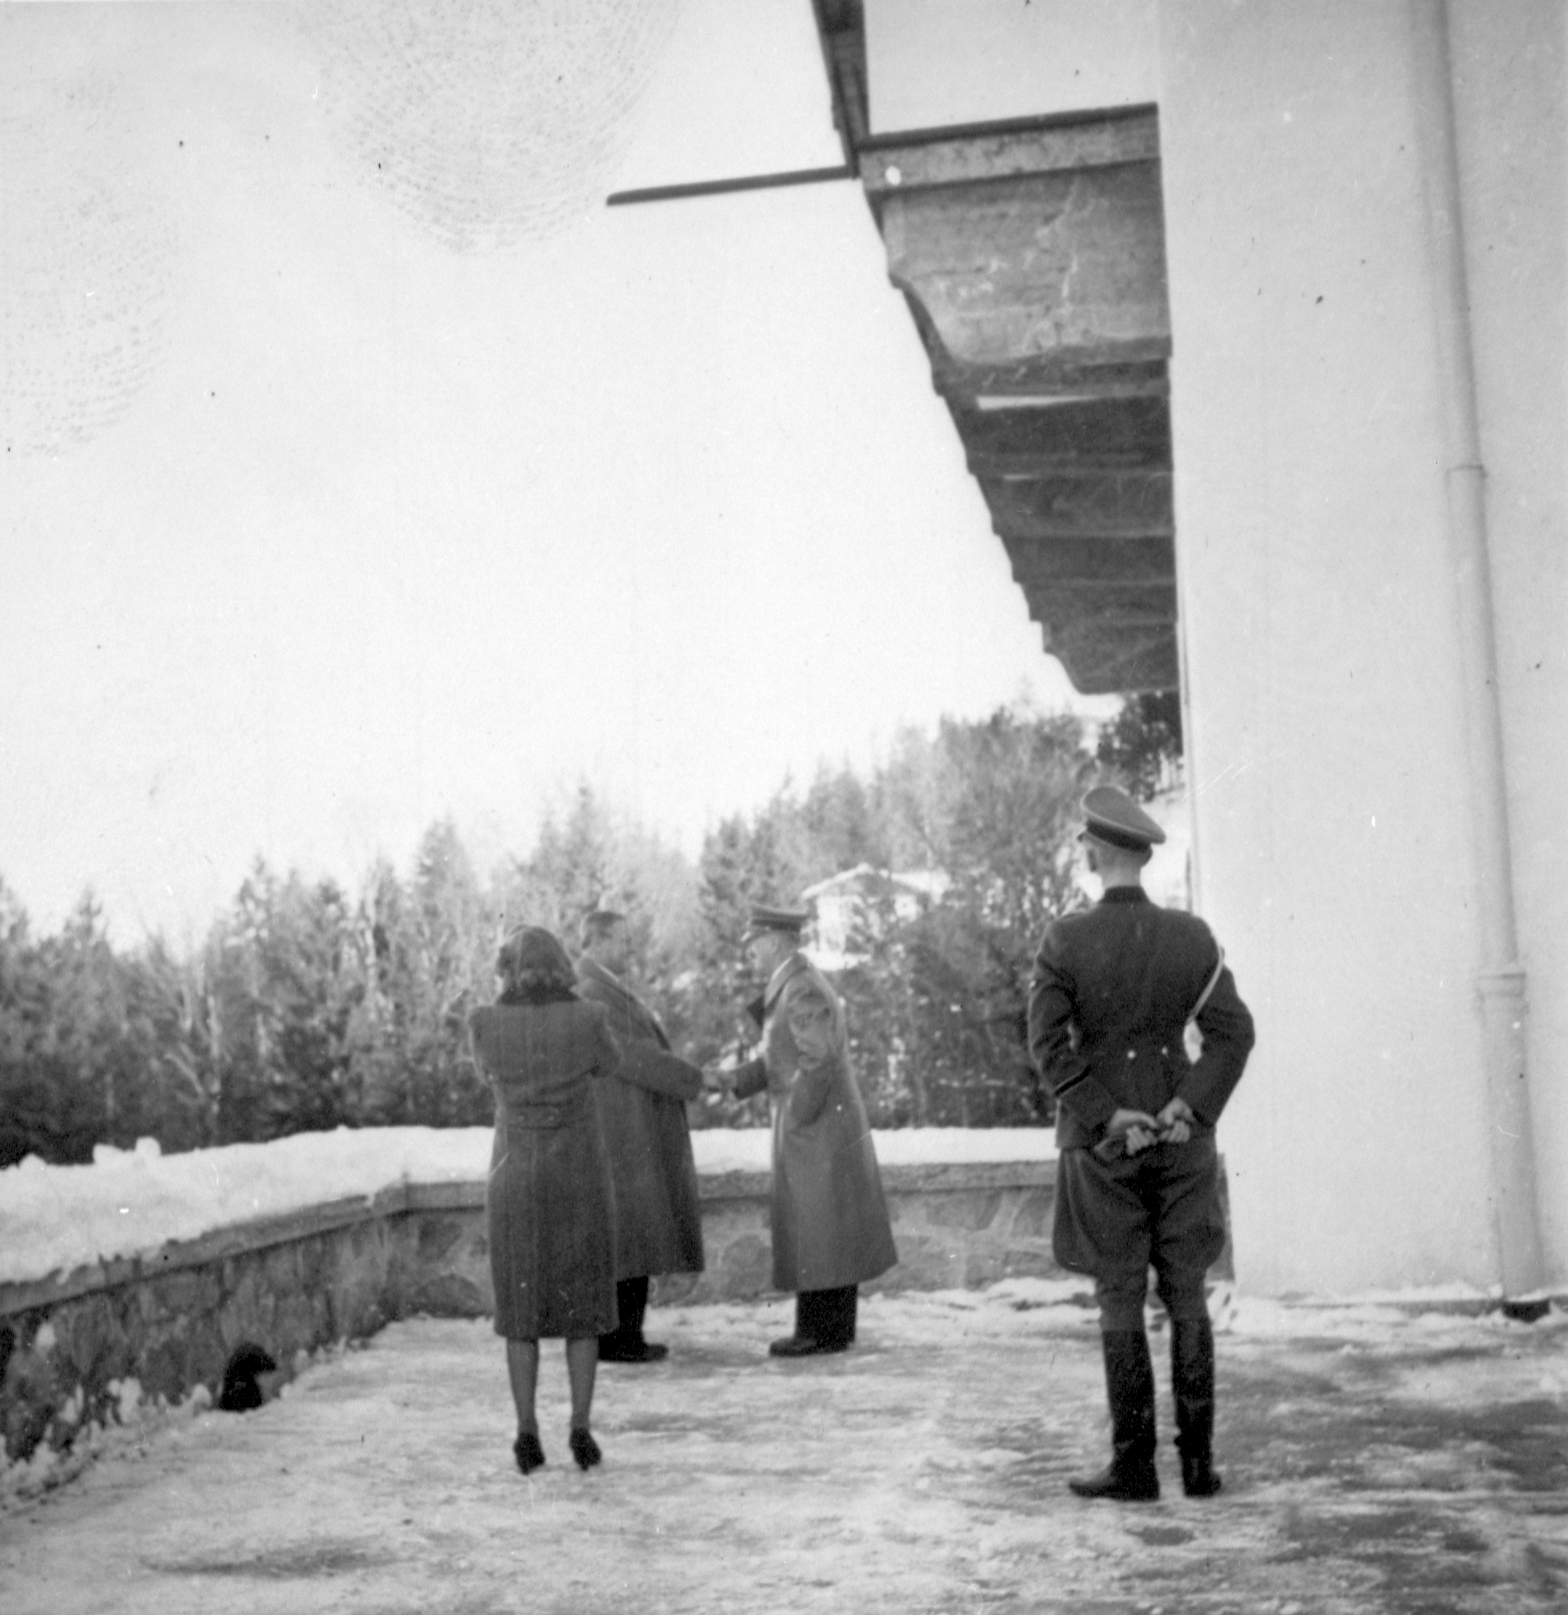 Eva Braun filming Hitler on the Berghof terrace early January 1940, from Eva Braun's albums